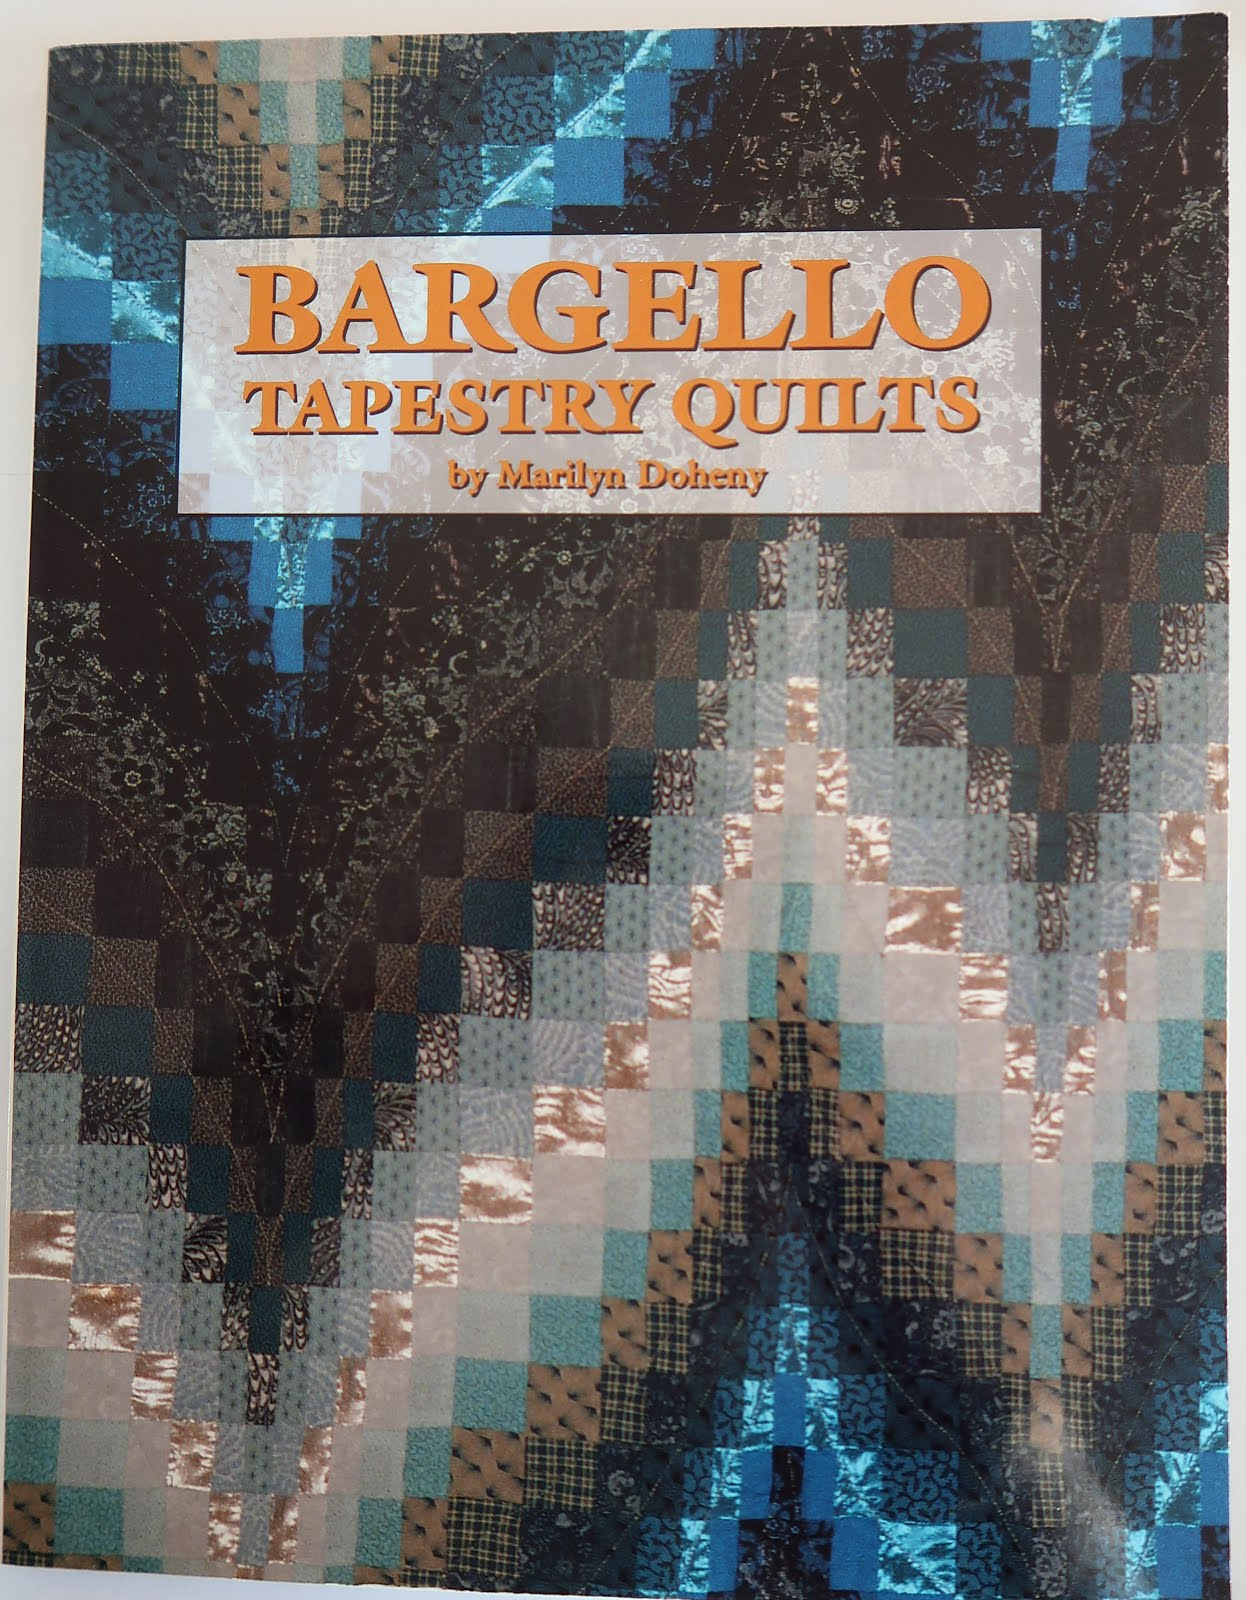 Bargello quilts by Marilyn Doheny (signed)!